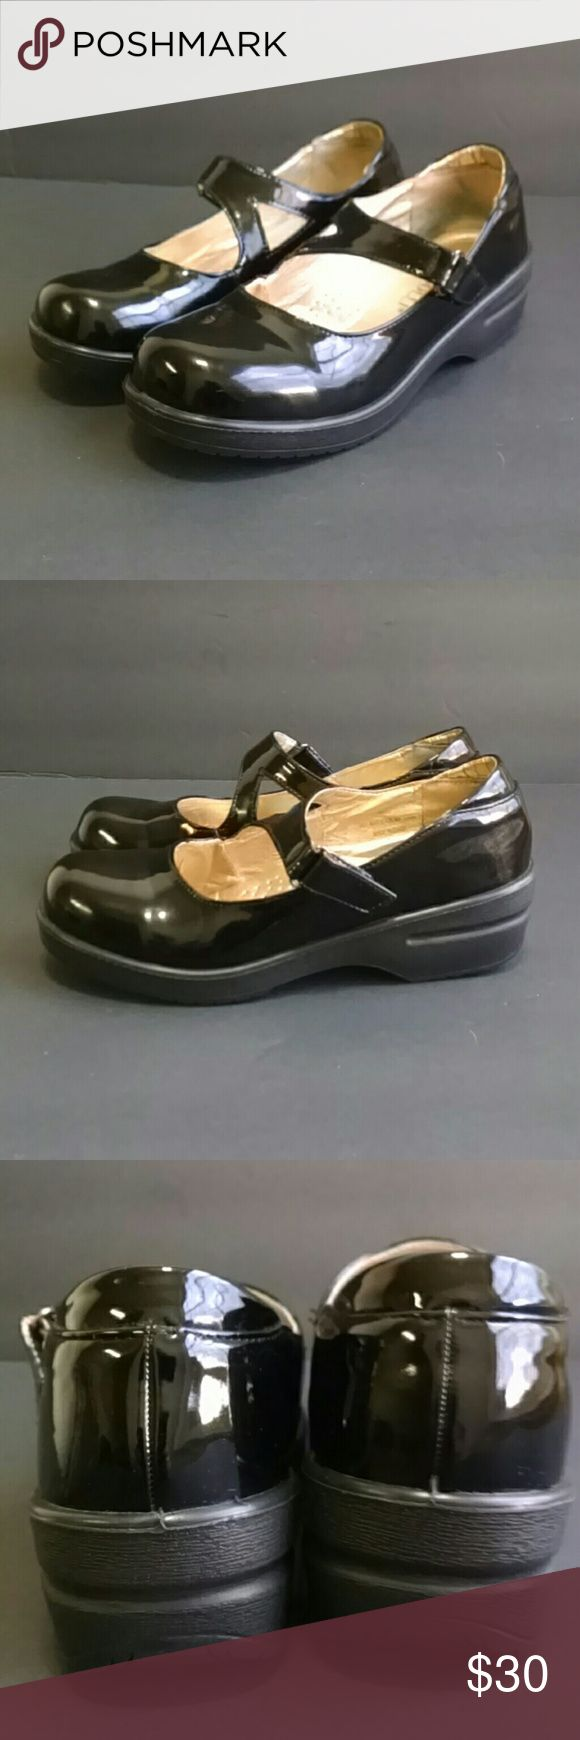 Rasolli Skid Resistant Women's mules size 7.5 Rasoli skid resistant women's mules size 7.5. Uppers in excellent condition and soles show no noticable wear. Rasoli Shoes Mules & Clogs